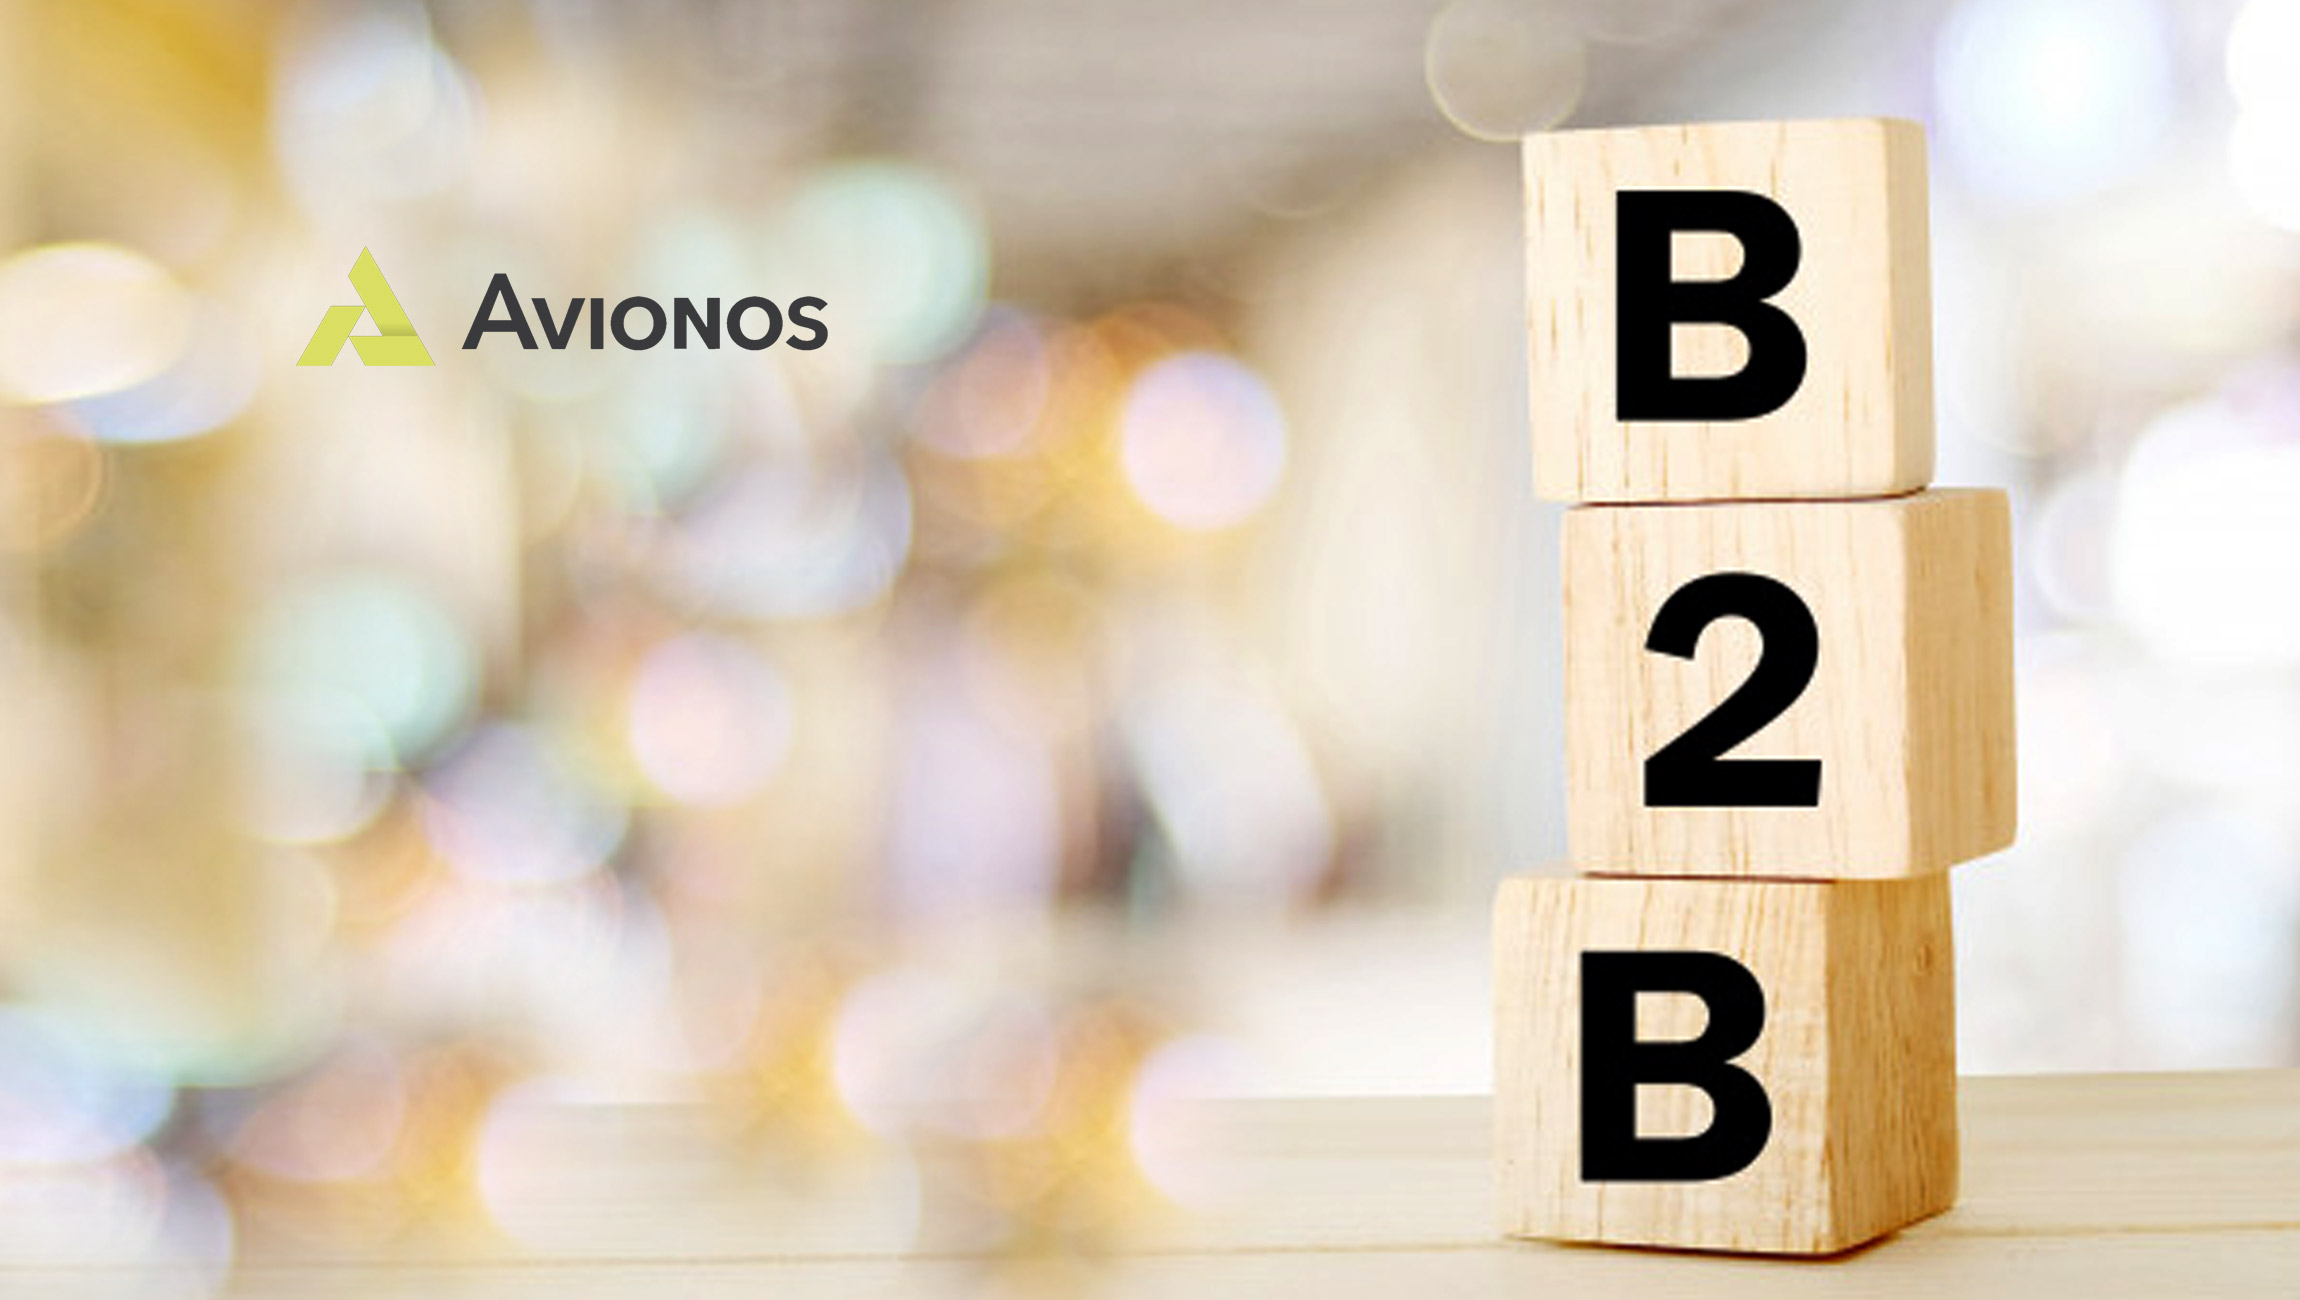 Avionos Partners with Bloomreach to Bring Personalized Search to B2B Customers